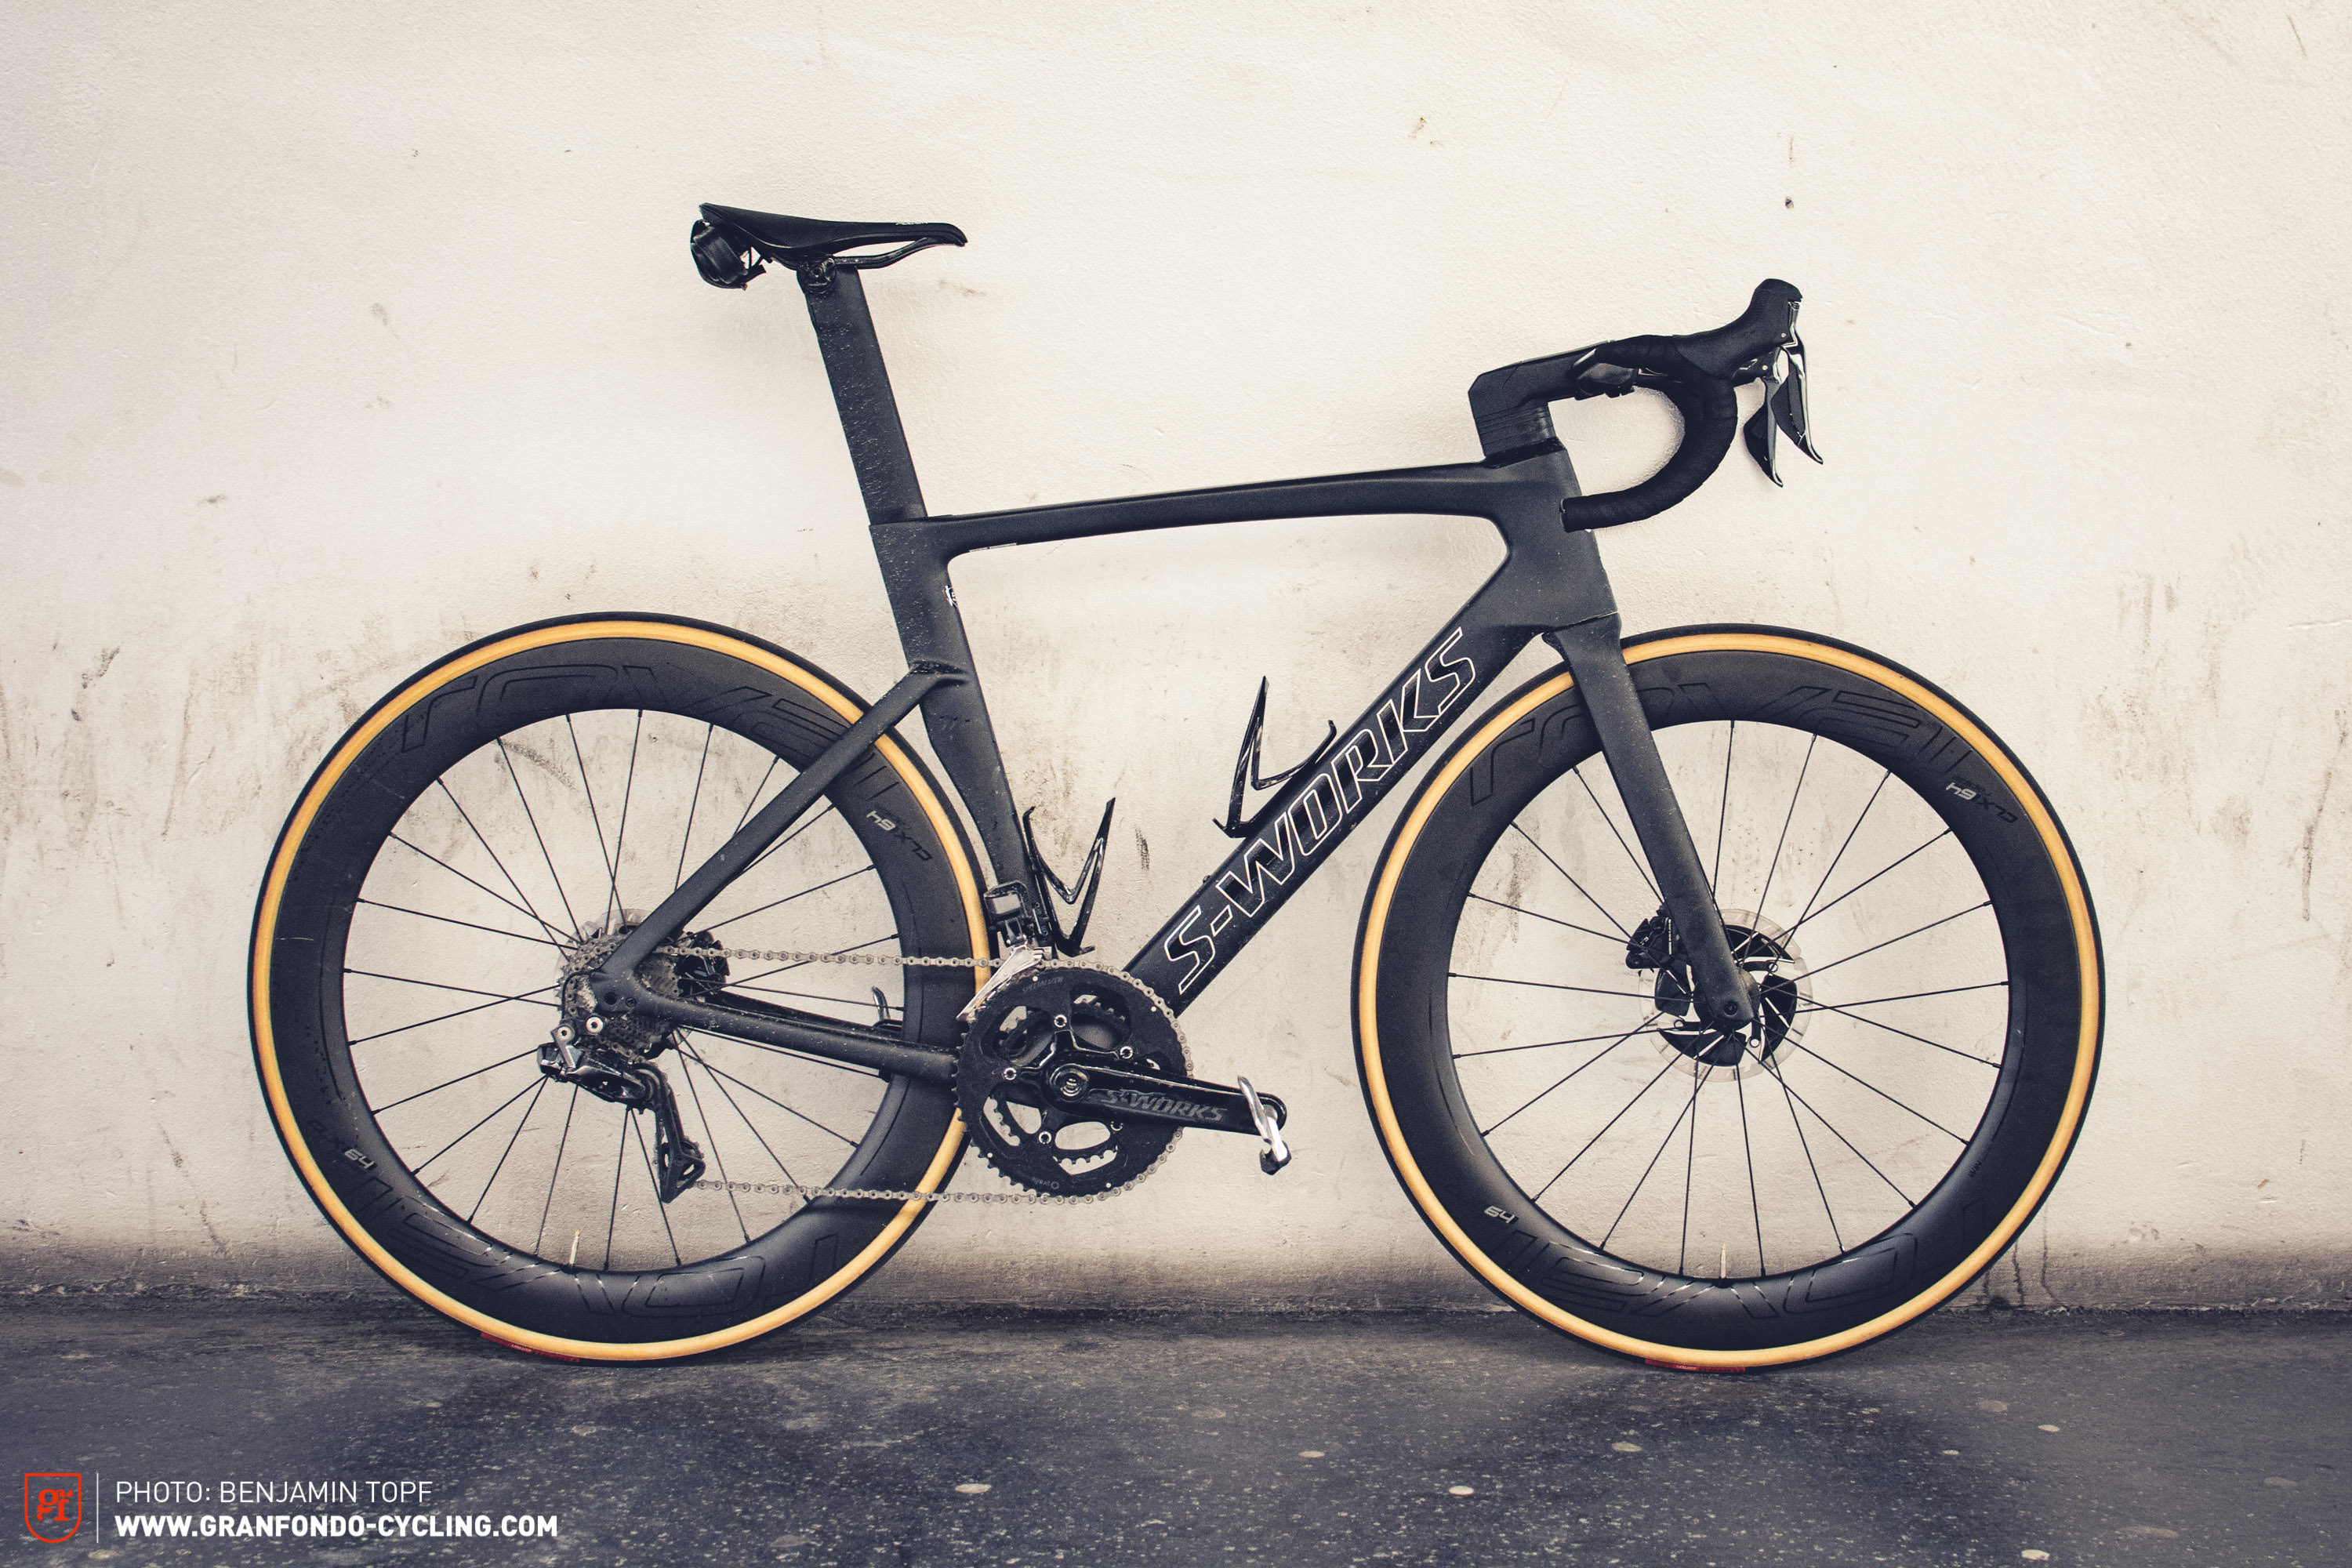 Specialized S-Works Venge Di2 2019 on test | GRAN FONDO